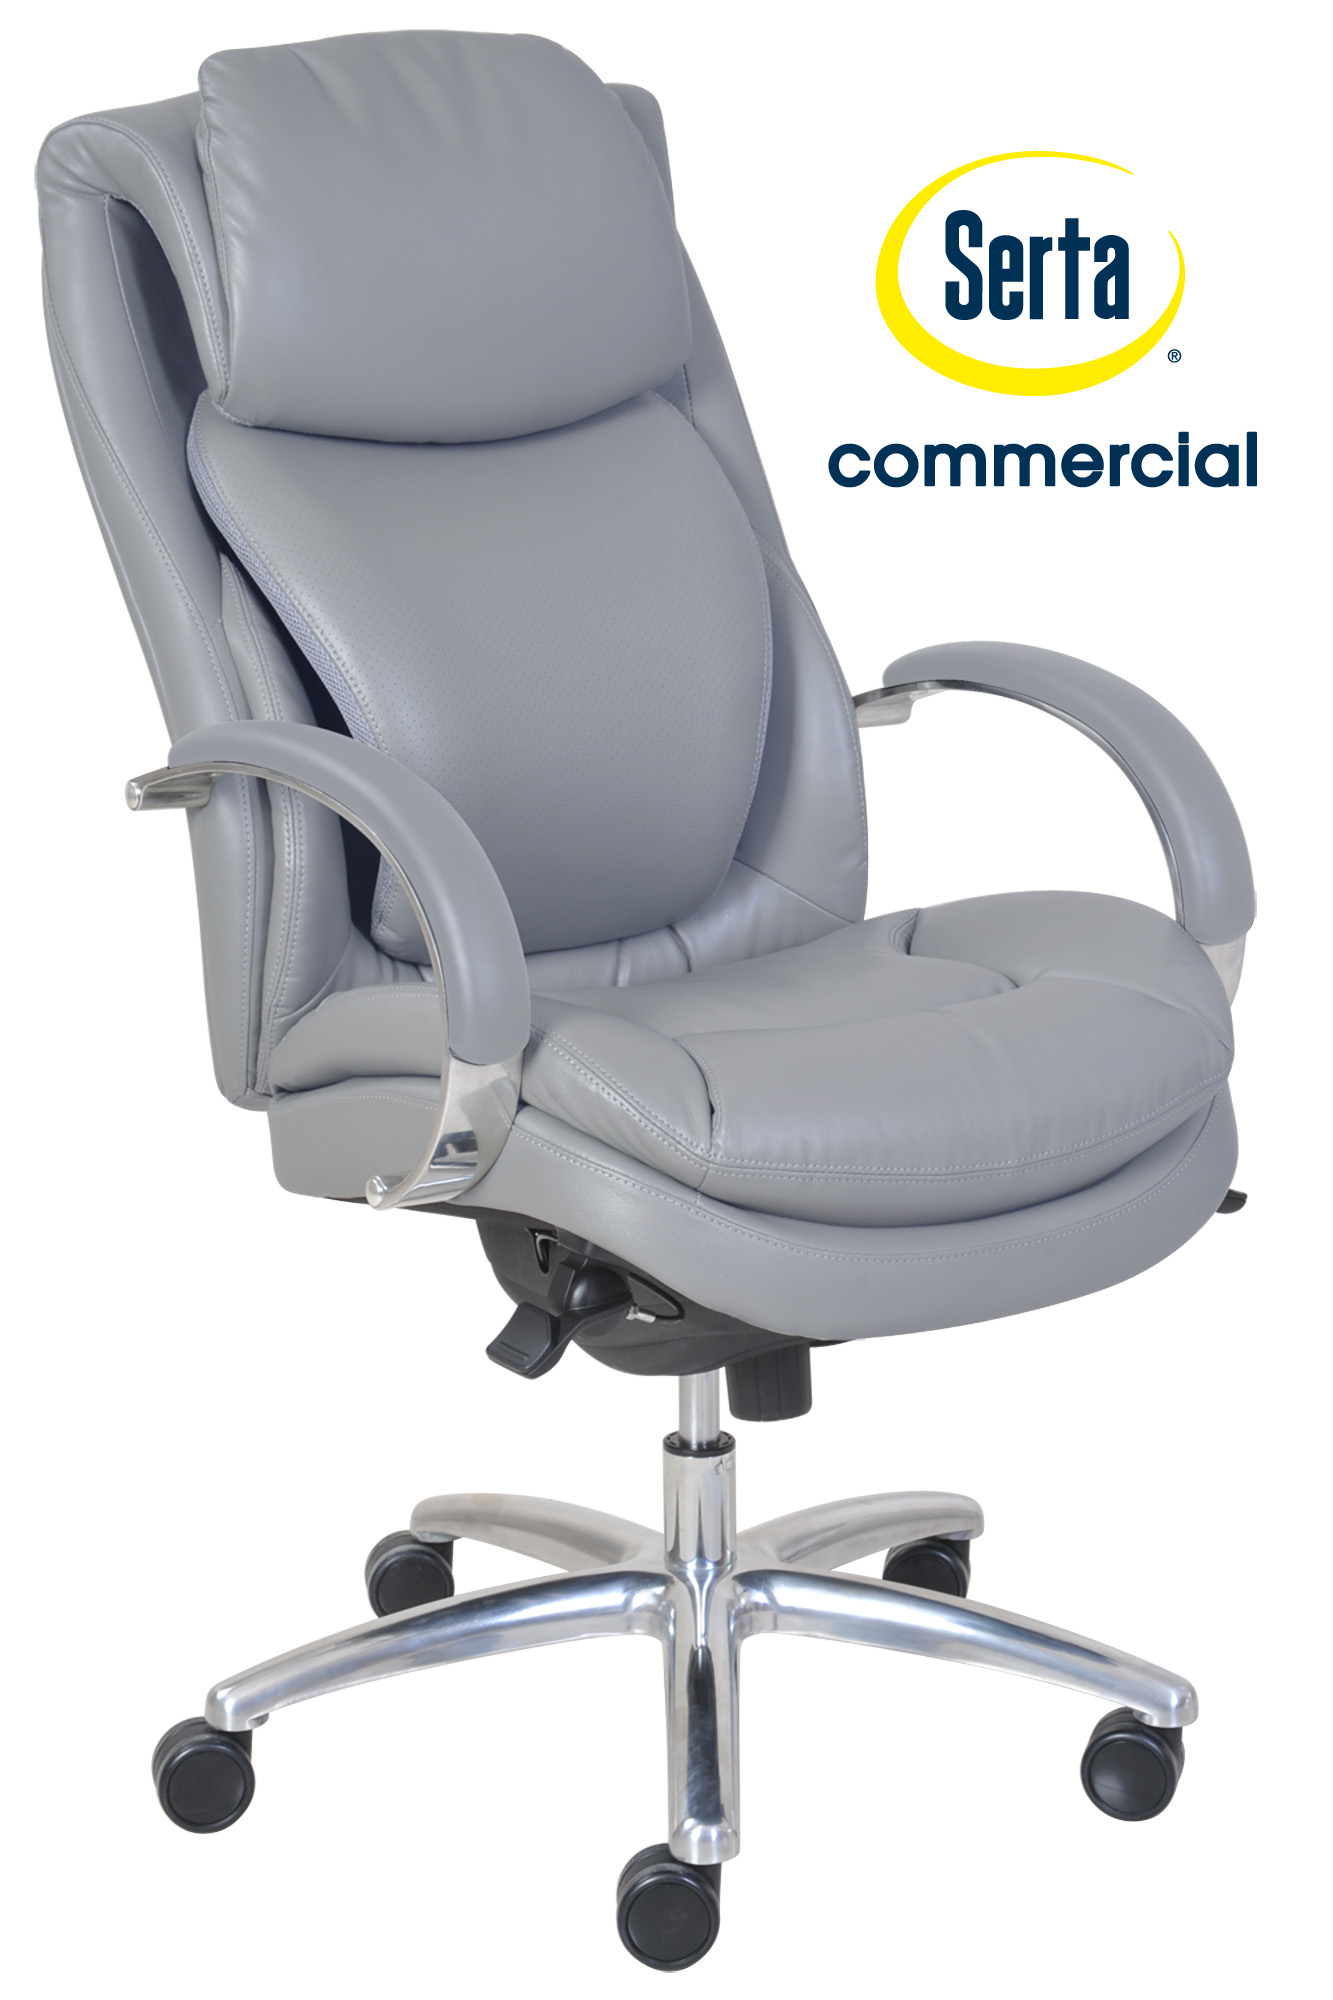 behind the chair promo codes large accent chairs with arms serta wellness by design air commercial series 100